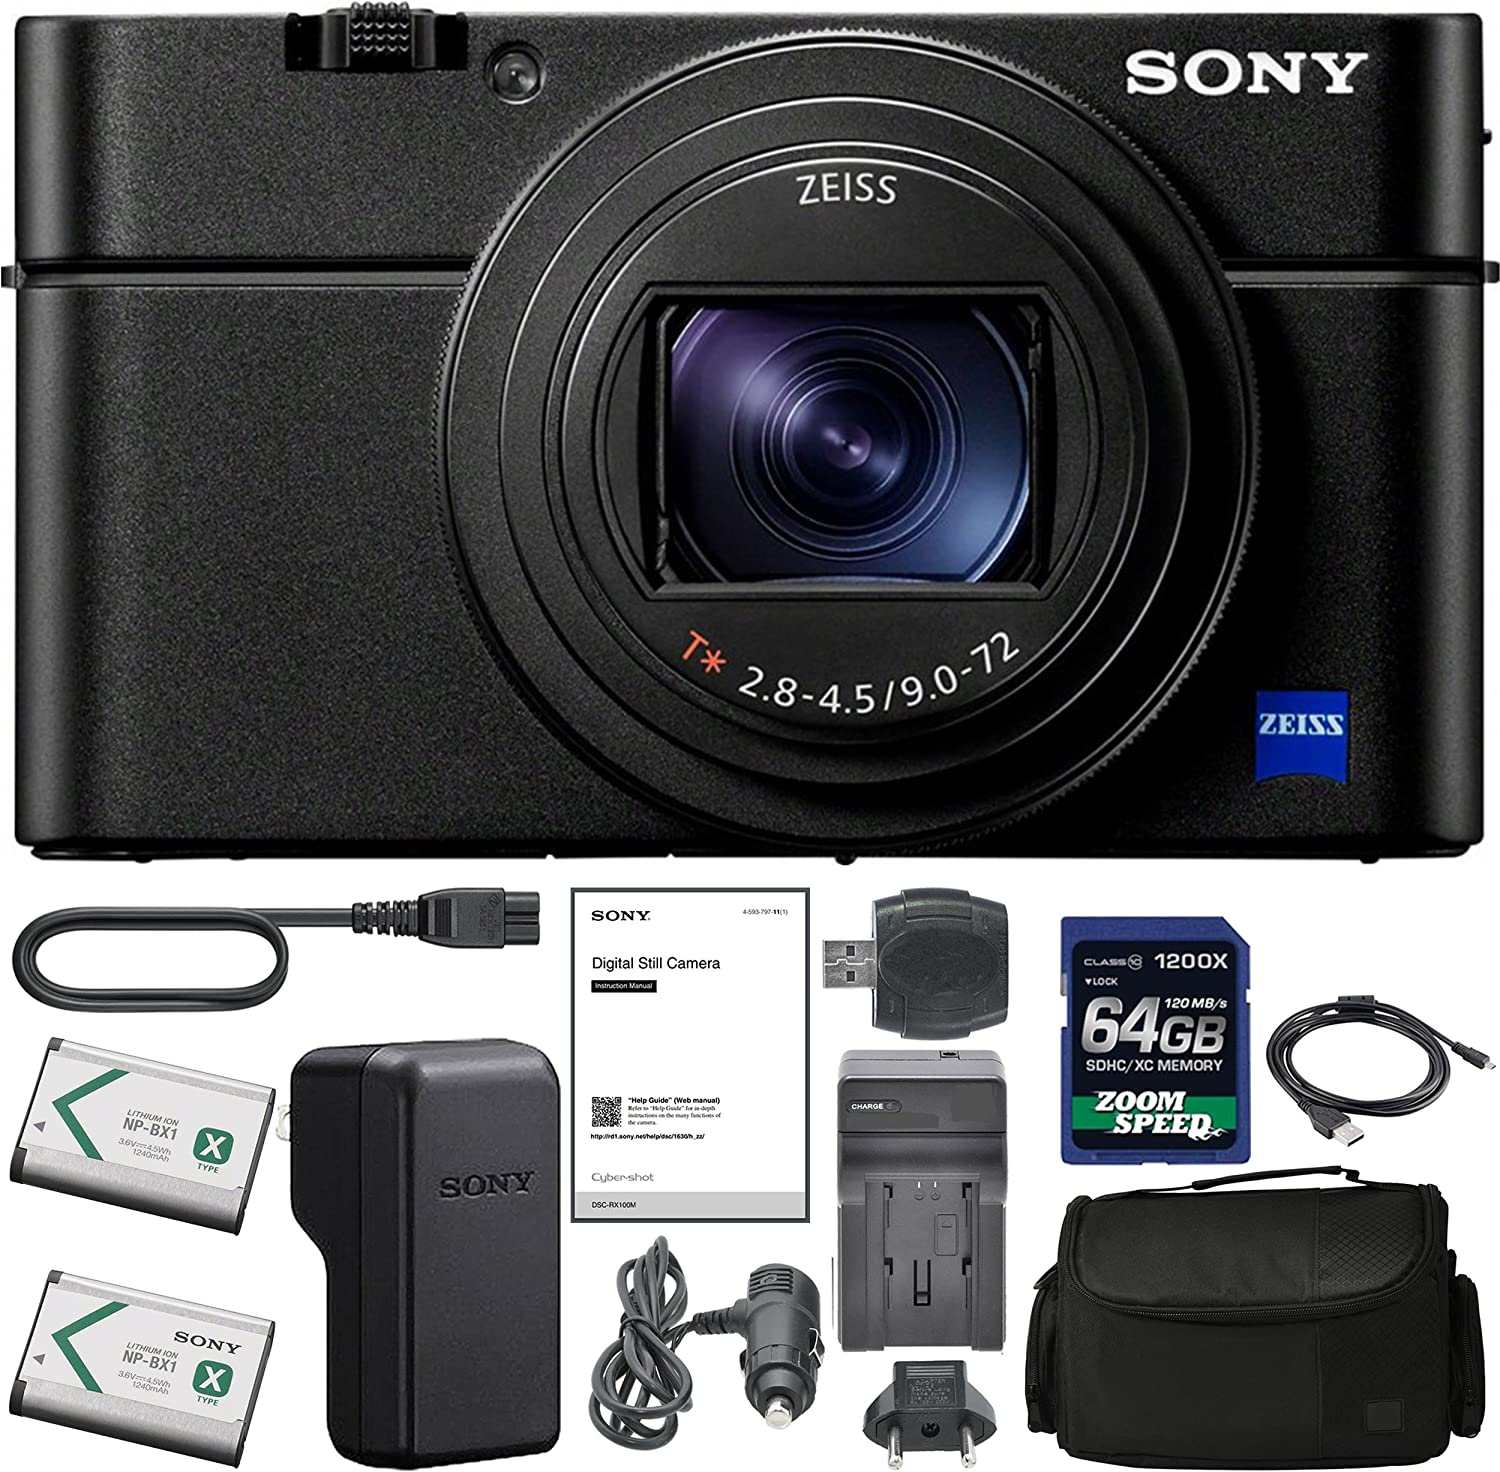 SonyCyber-Shot DSC-RX100 VI Digital Camera with Sony NP-BX1/M8 Battery, Spare NP-BX1 Battery, 64gb SDXC 1200x Card, Card Reader, Carrying case, AC Adapter Bundle Kit - International Version